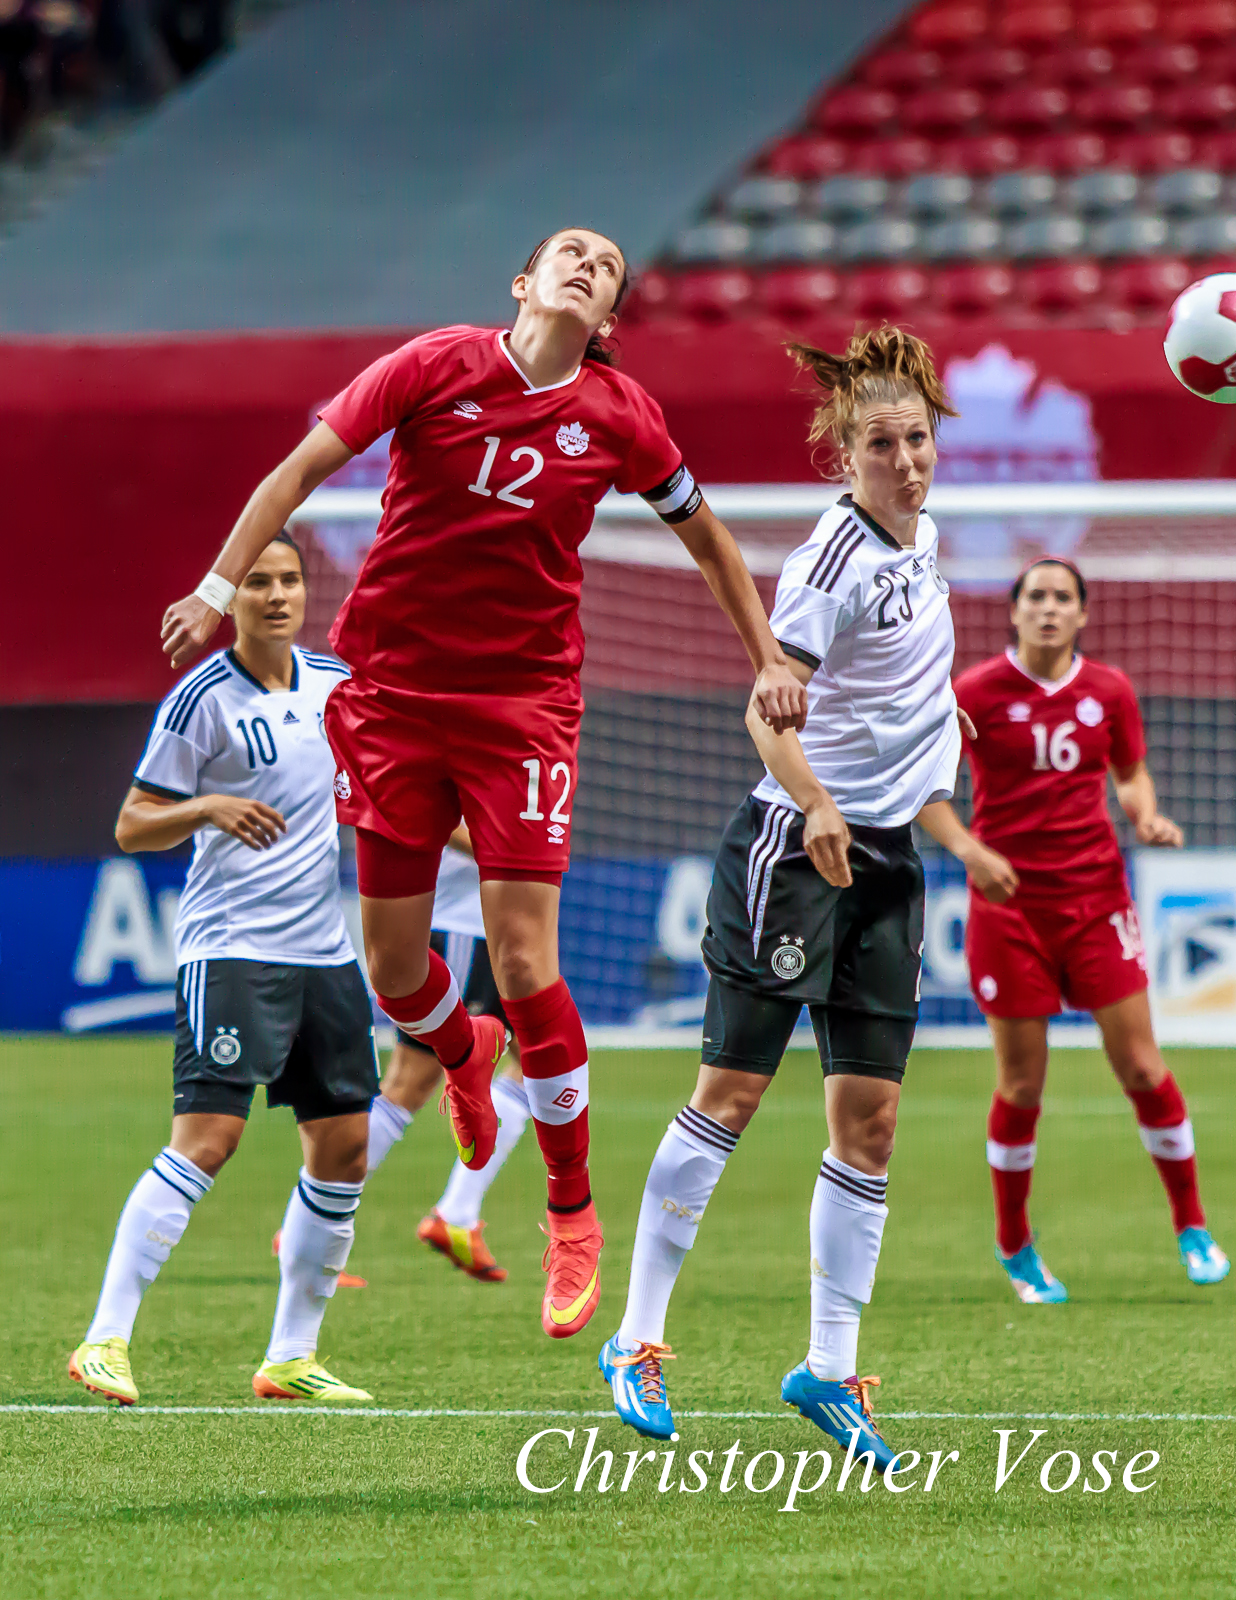 2014-06-18 Christine Sinclair and Verena Faißt.jpg